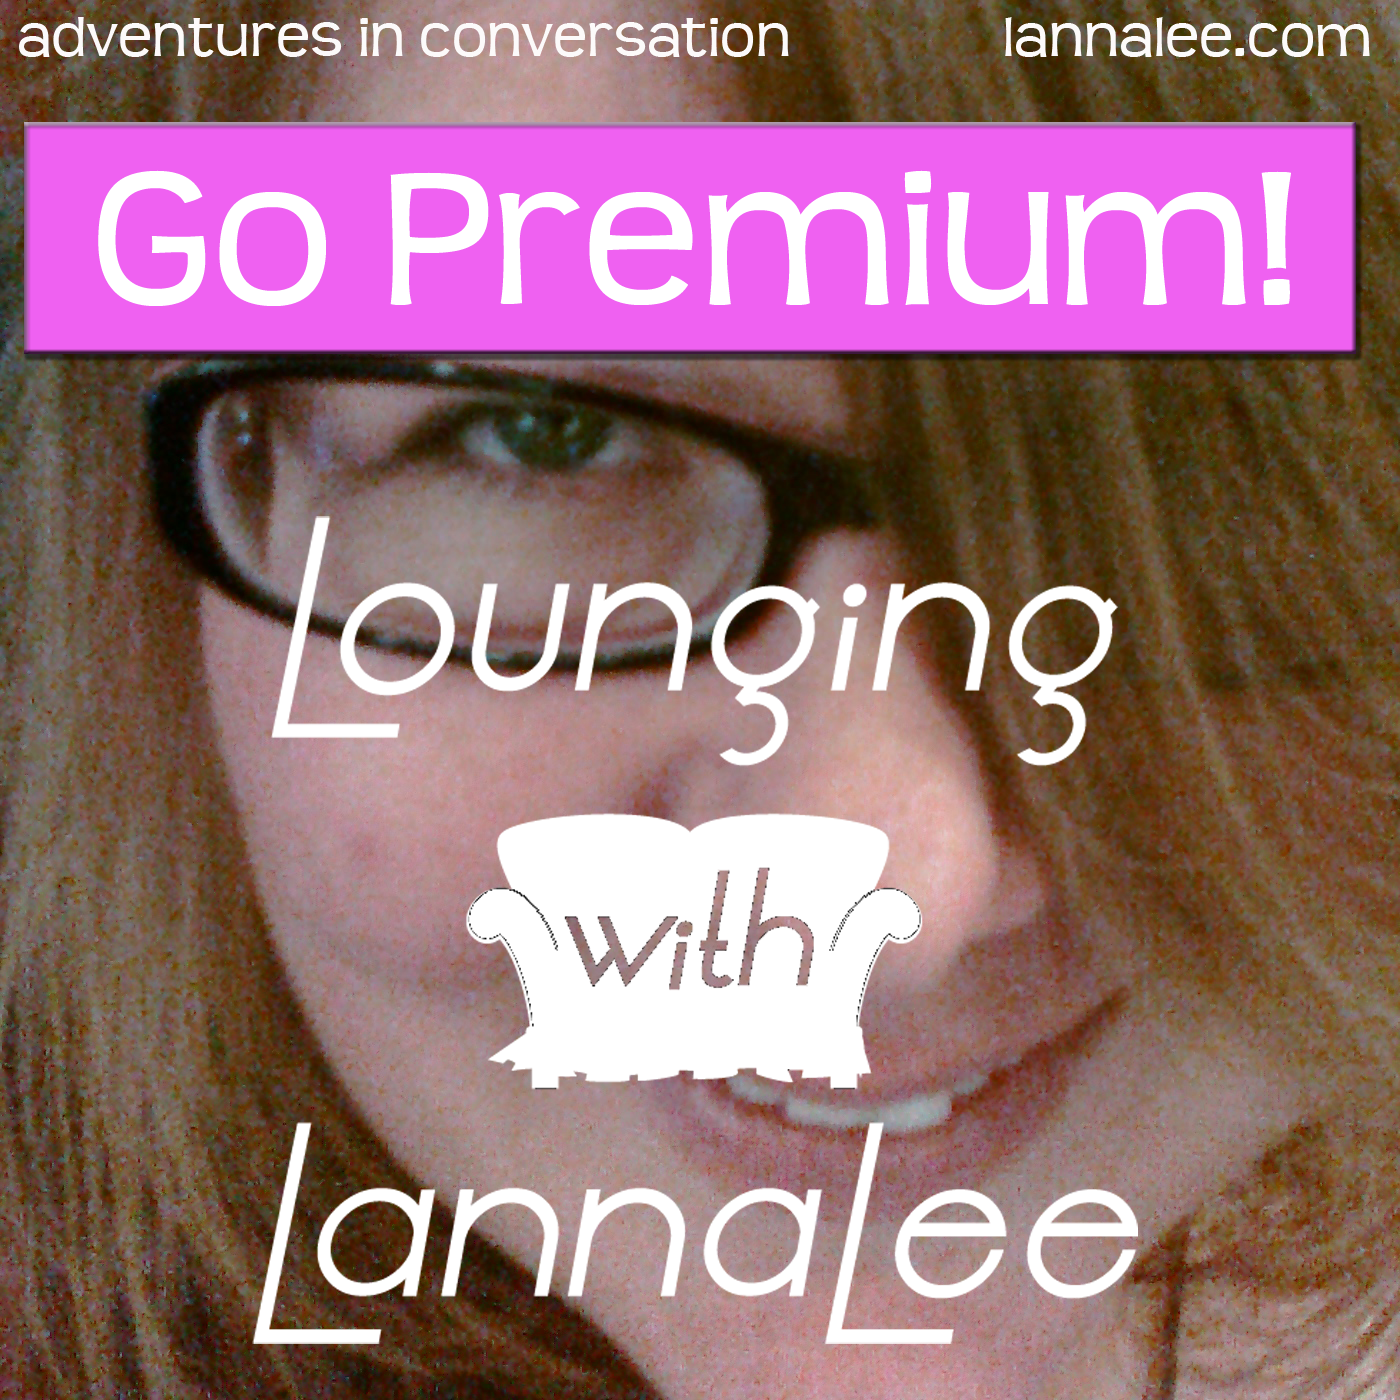 Lounging with LannaLee Go Premium!